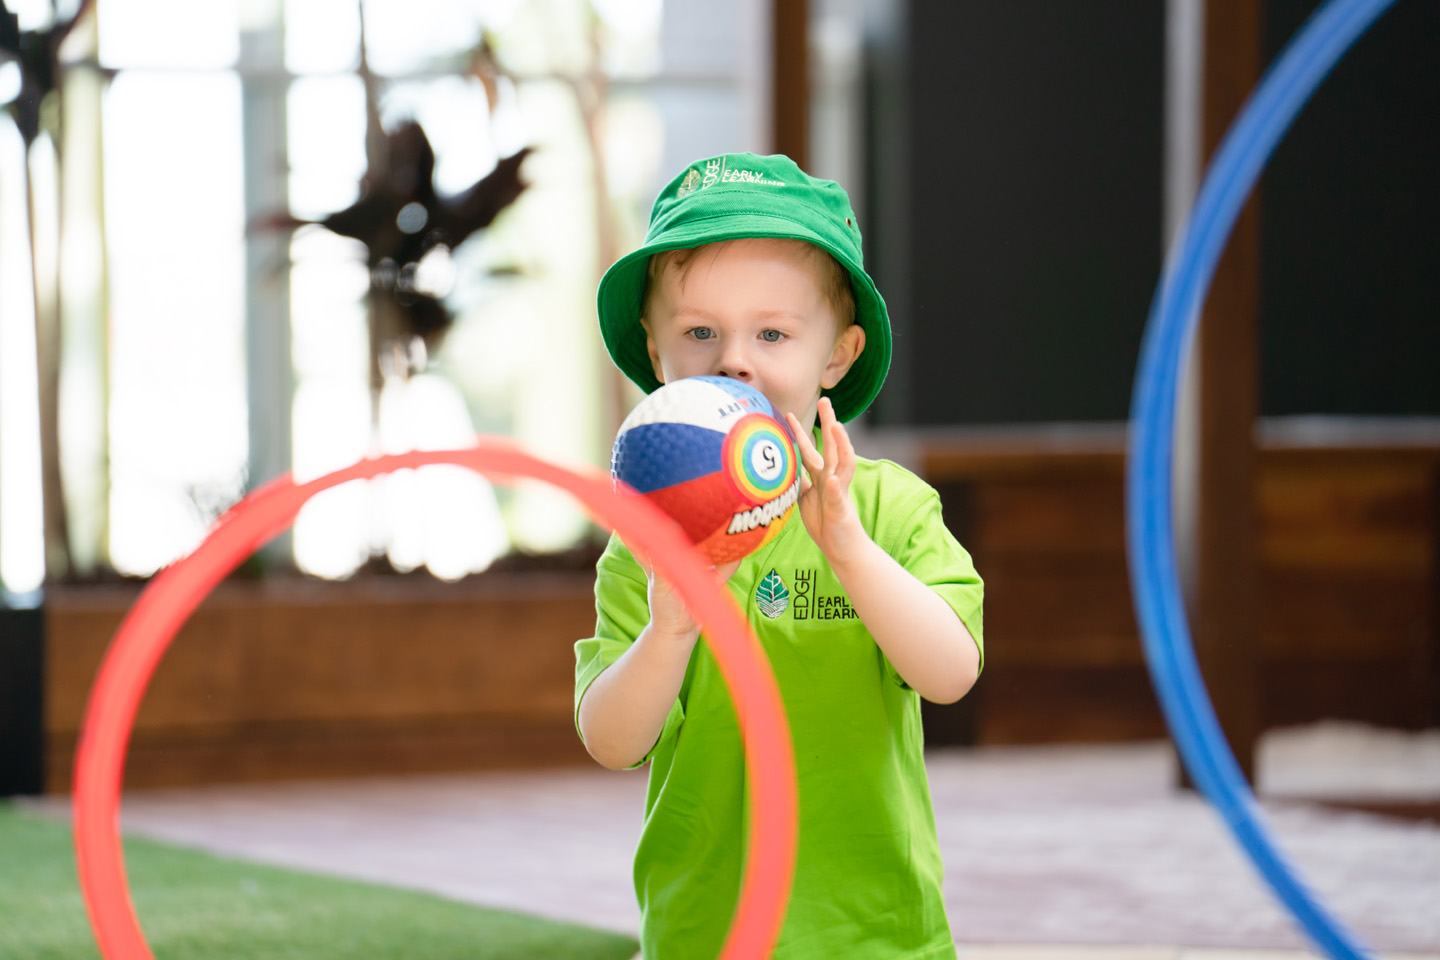 South Brisbane Active Early Learning